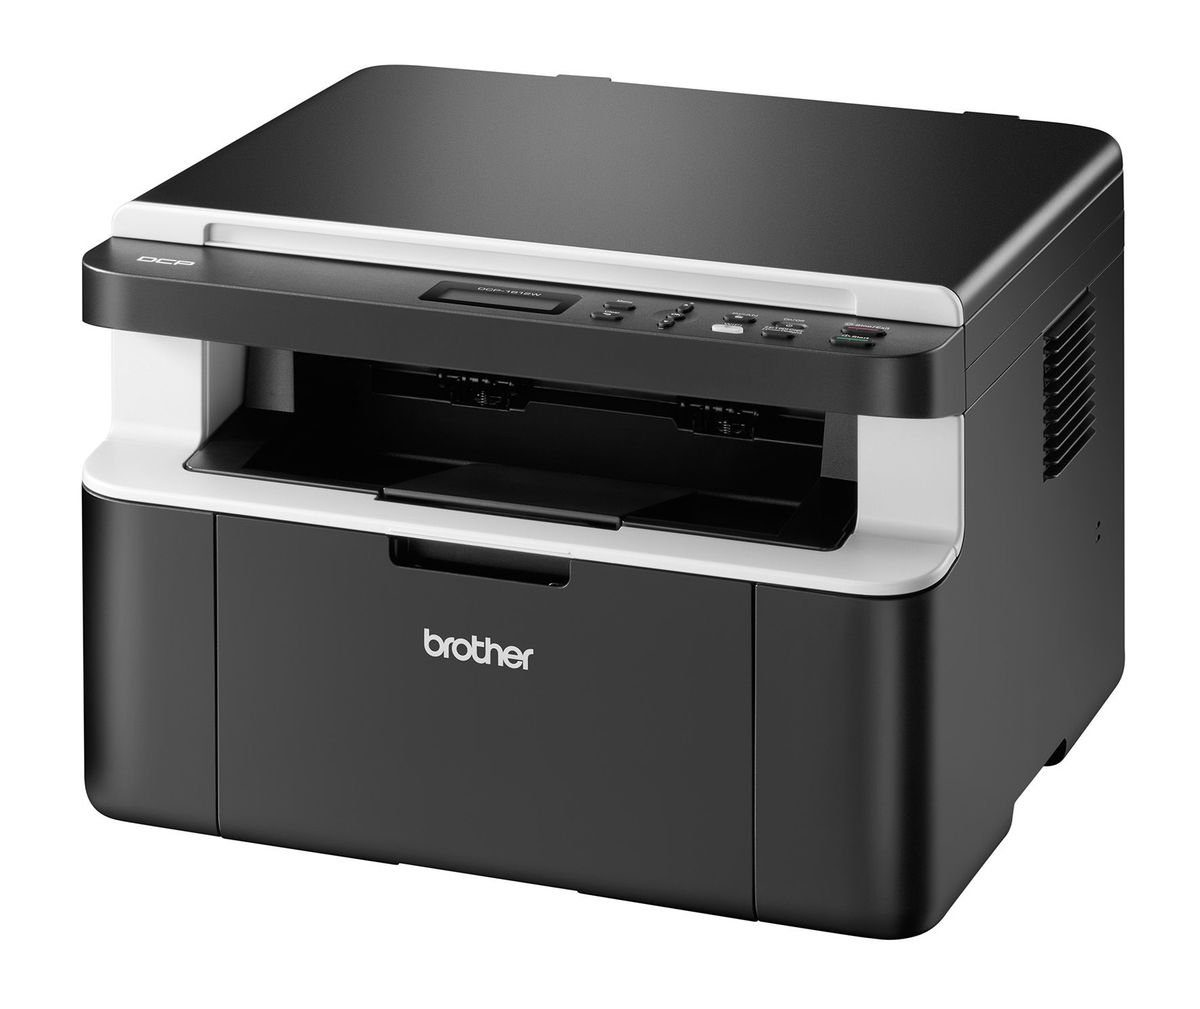 Brother Monolaser-Multifunktionsdrucker »DCP-1612W 3in1«